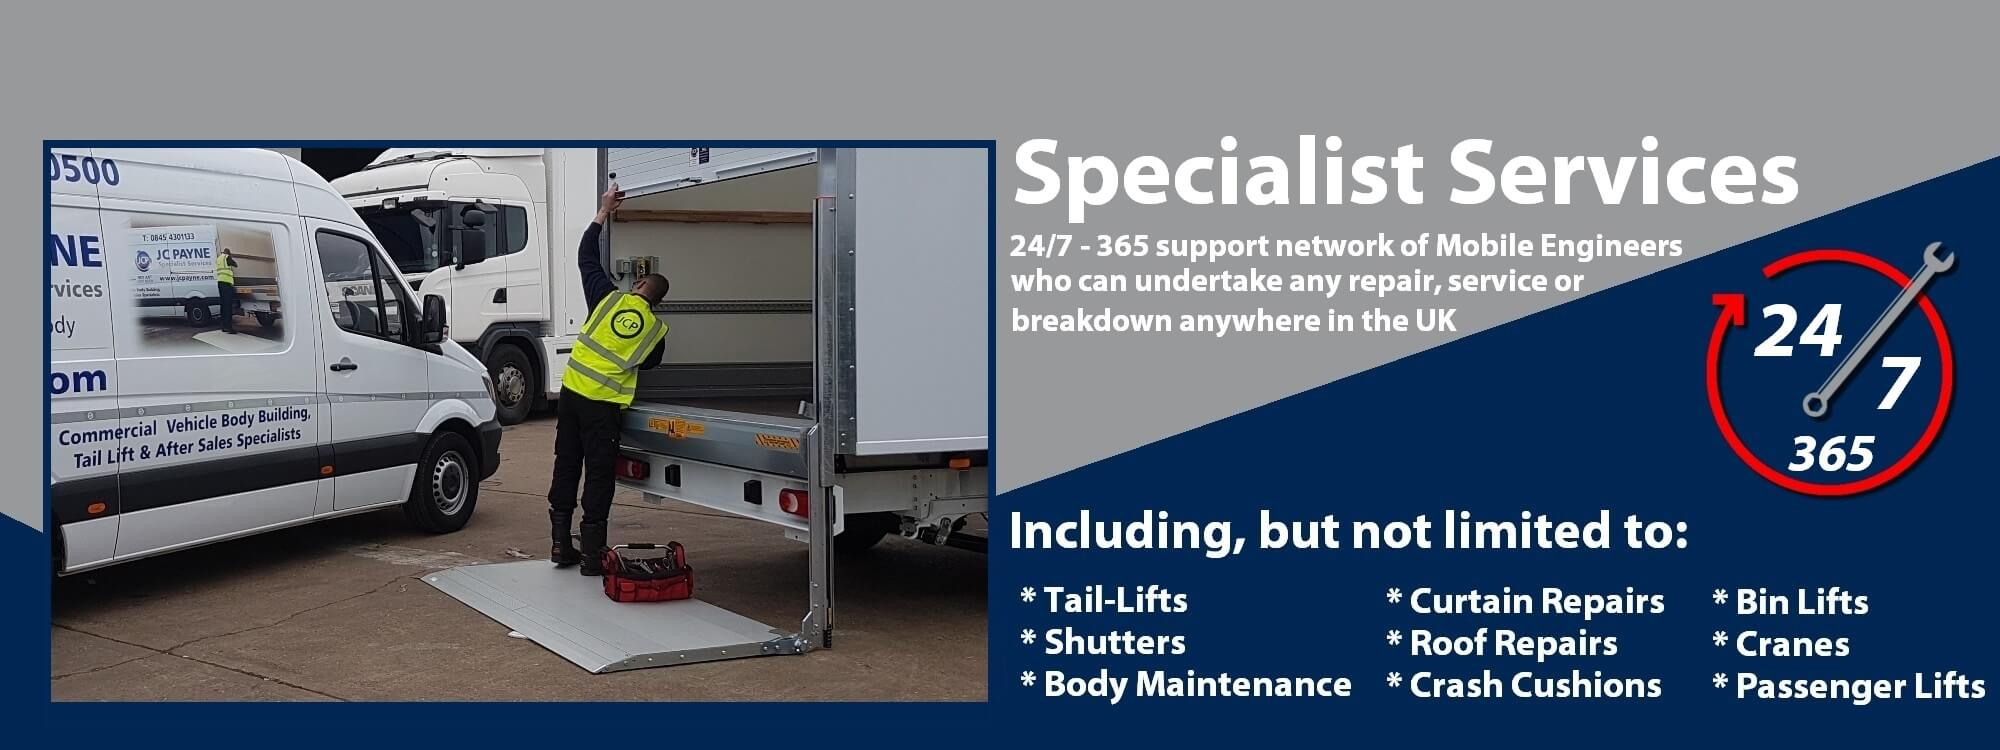 JC Payne Specialist Services